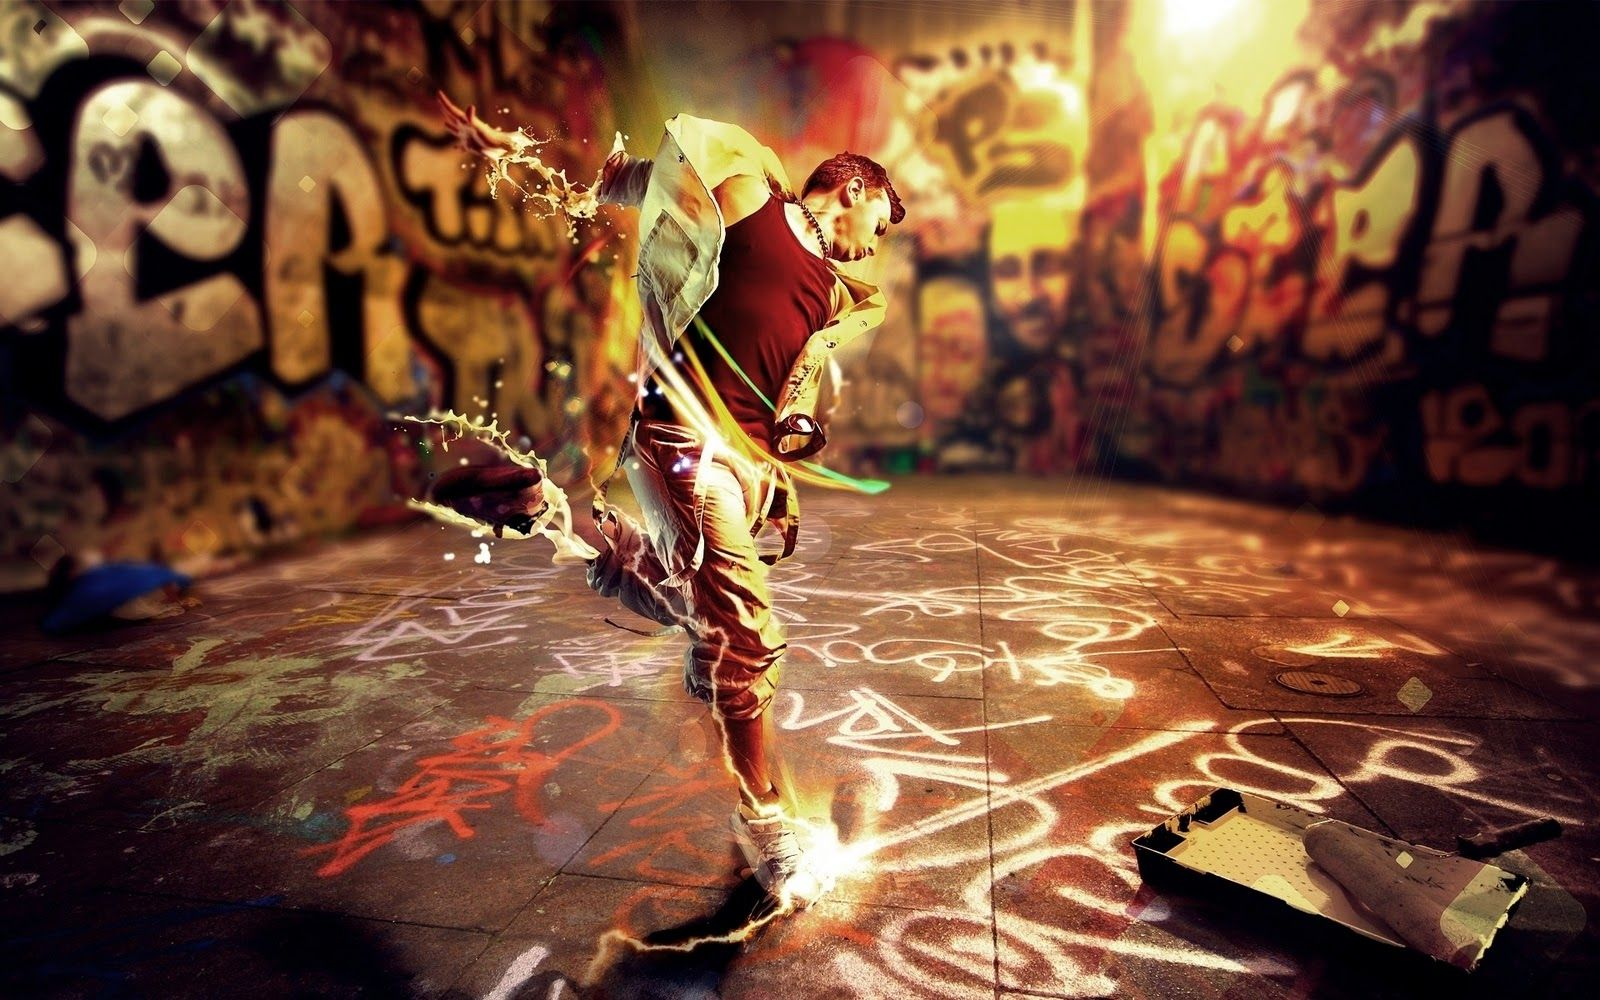 Wallpaper graffiti best graffiti wallpapers wide high definition wallpaper graffiti best graffiti wallpapers wide high definition 19201080 graffiti hd backgrounds voltagebd